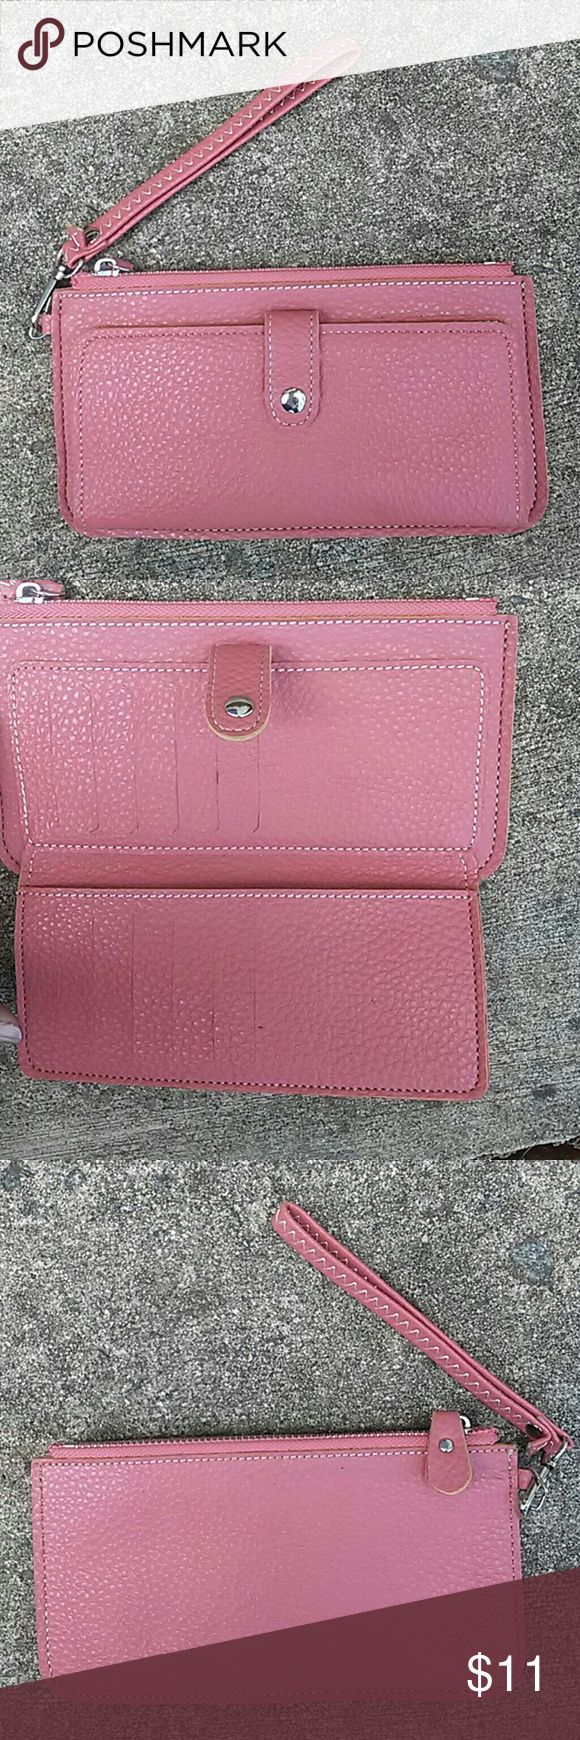 Pink Mauve Womens Wristlet Faux Leather Purse EUC Very nice faux leather mauve pink wristlet. Zip top closure with snap closure area with 12 credit card slots. See photos. none Bags Clutches & Wristlets